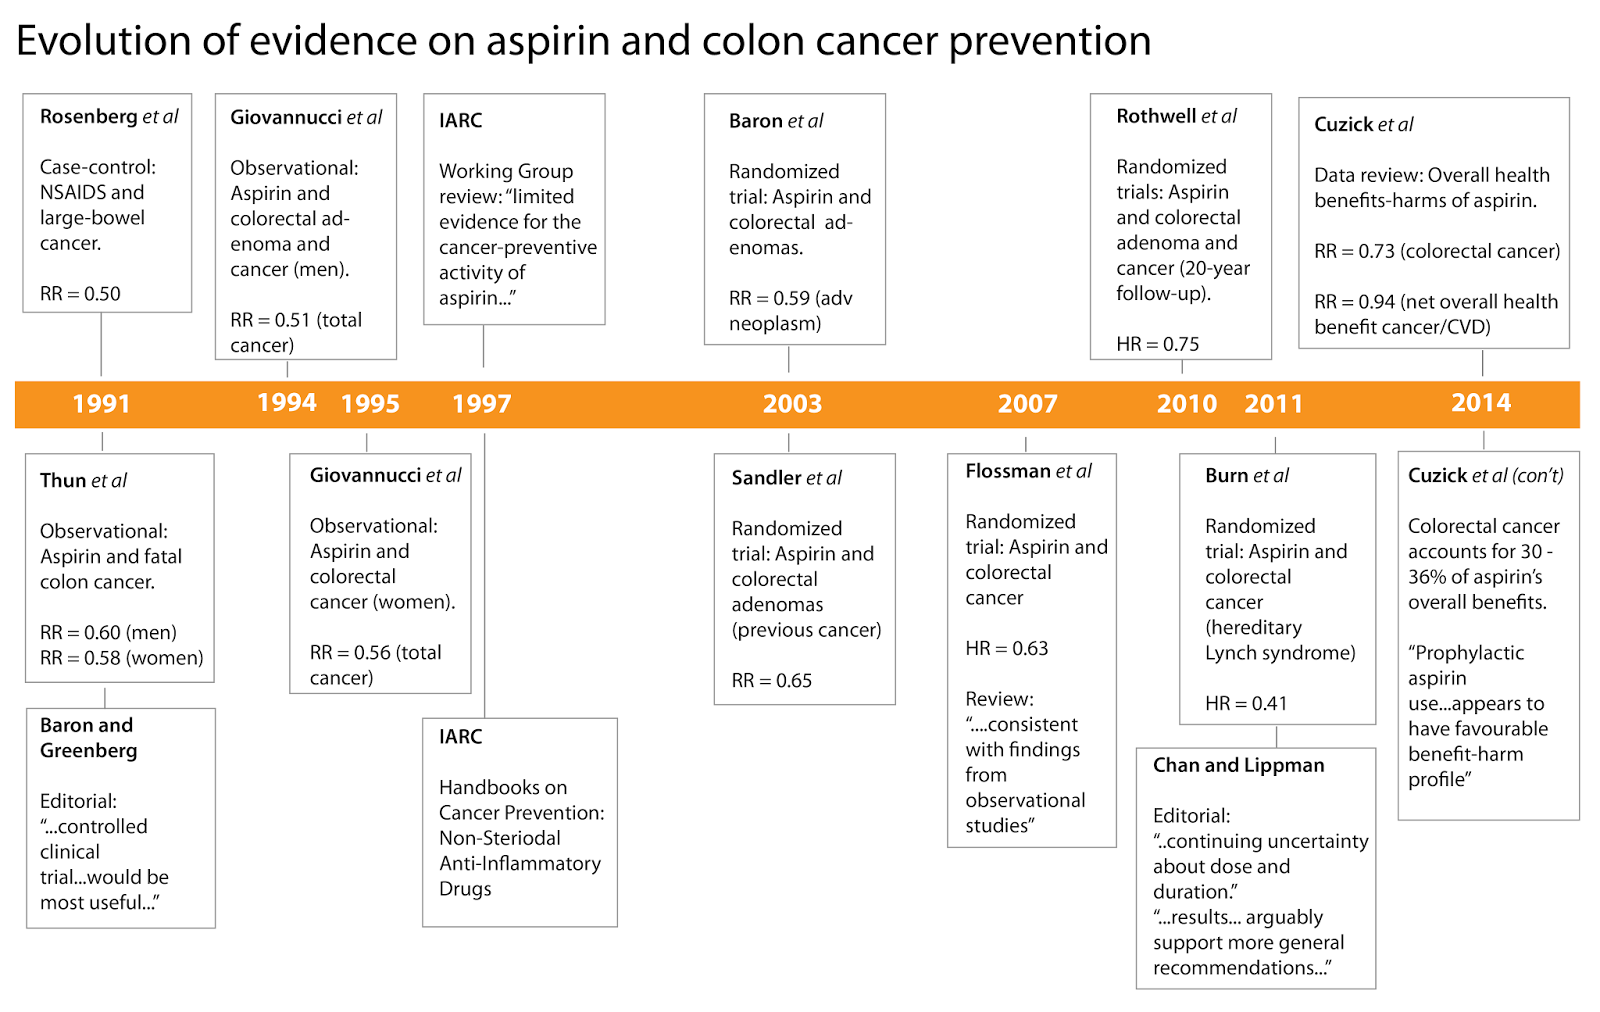 Evolution Of The Science On Aspirin Use And Colon Cancer Prevention Public Health Sciences Division Washington University In St Louis